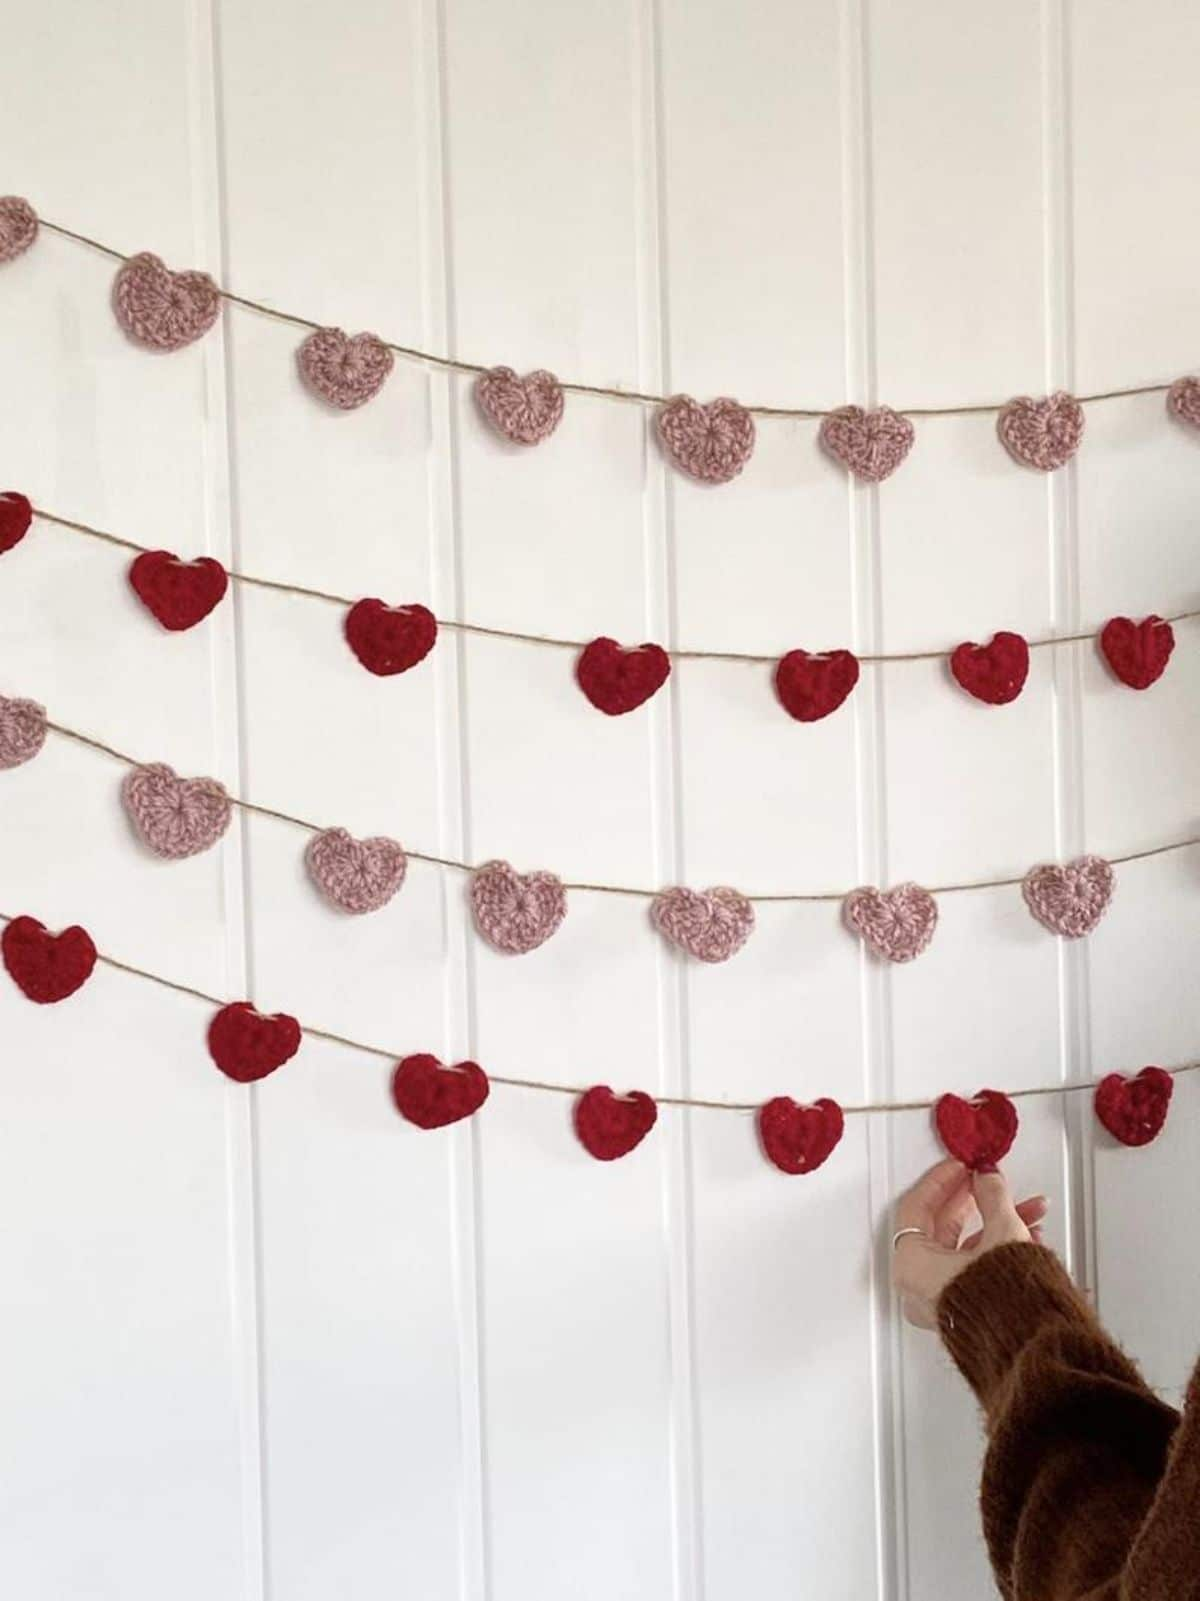 ON a white batten wall are 2 strings of red hearts and 2 strings of pink hearts